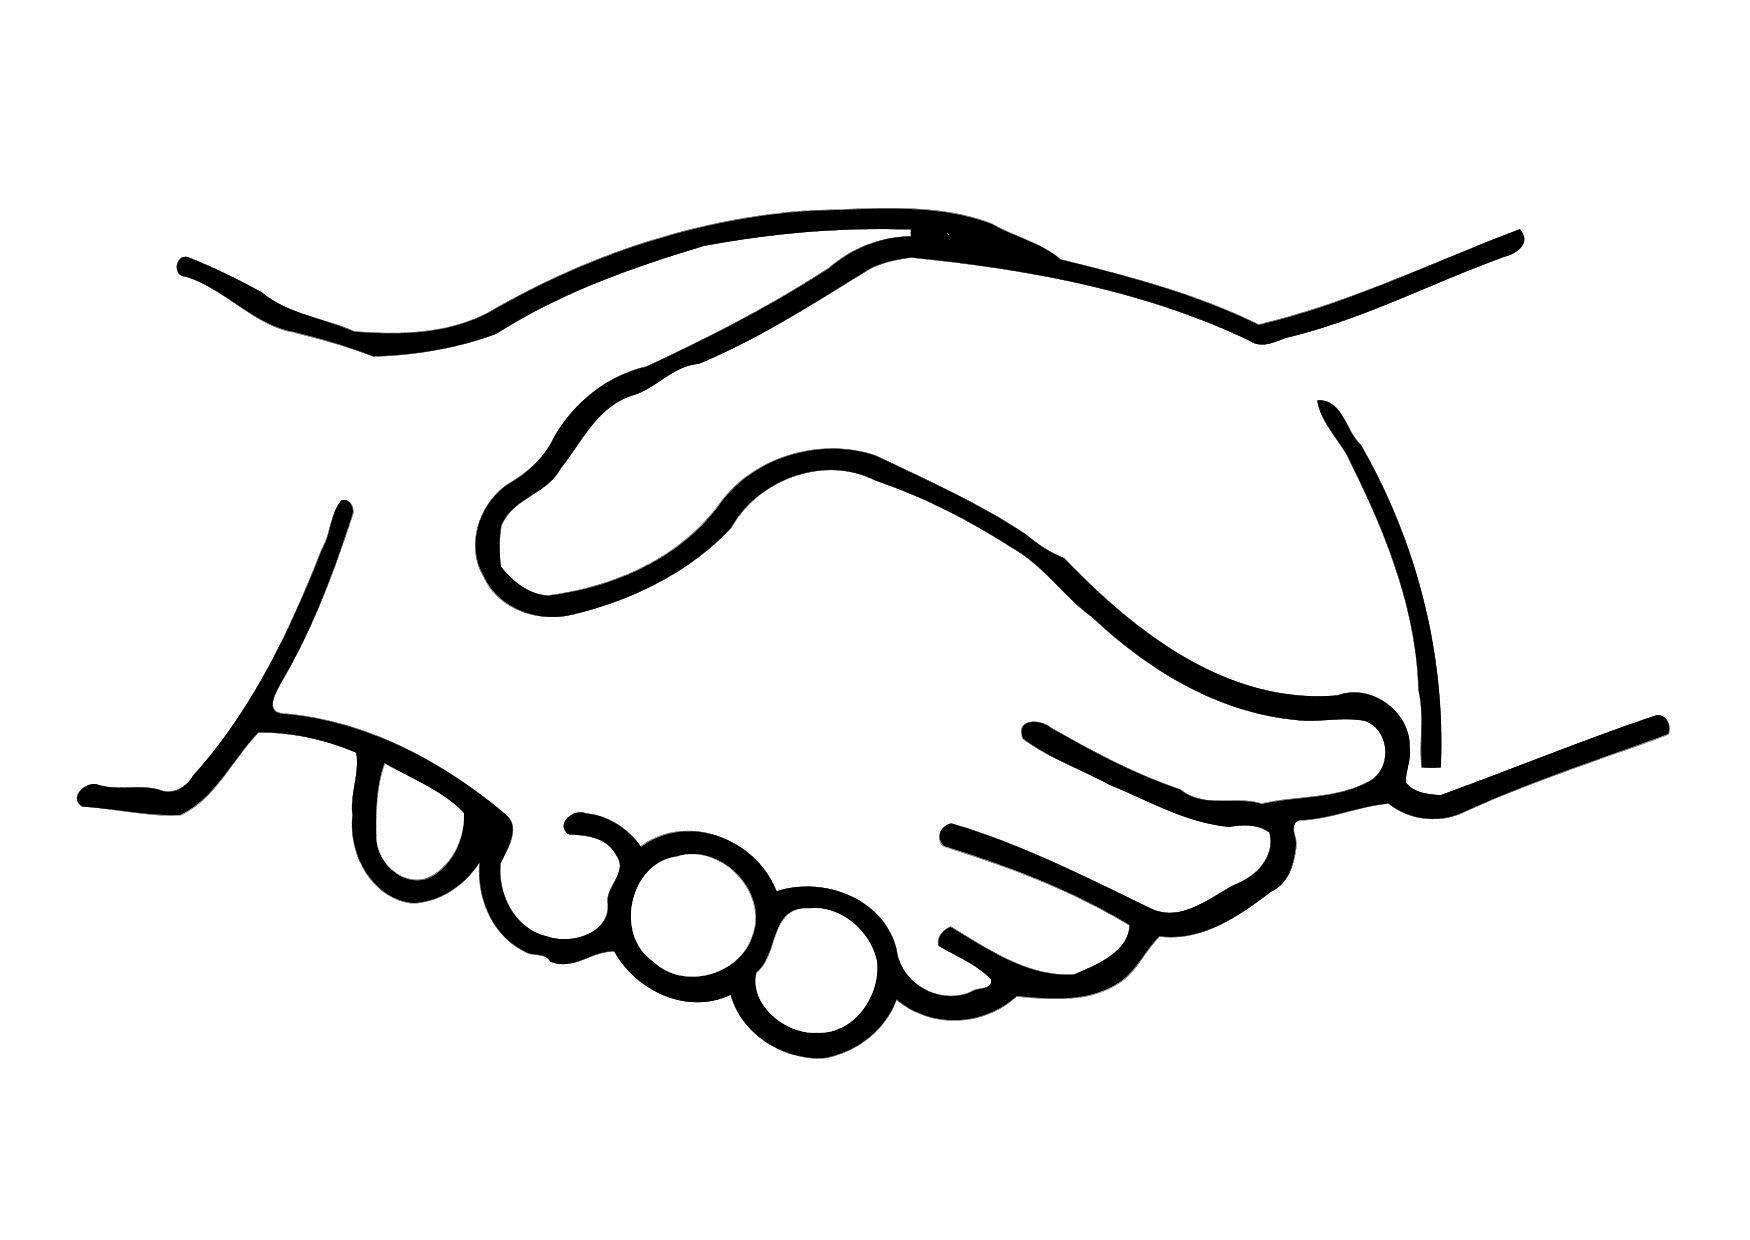 Coloring-Page-Shake-Hands-Dl11321